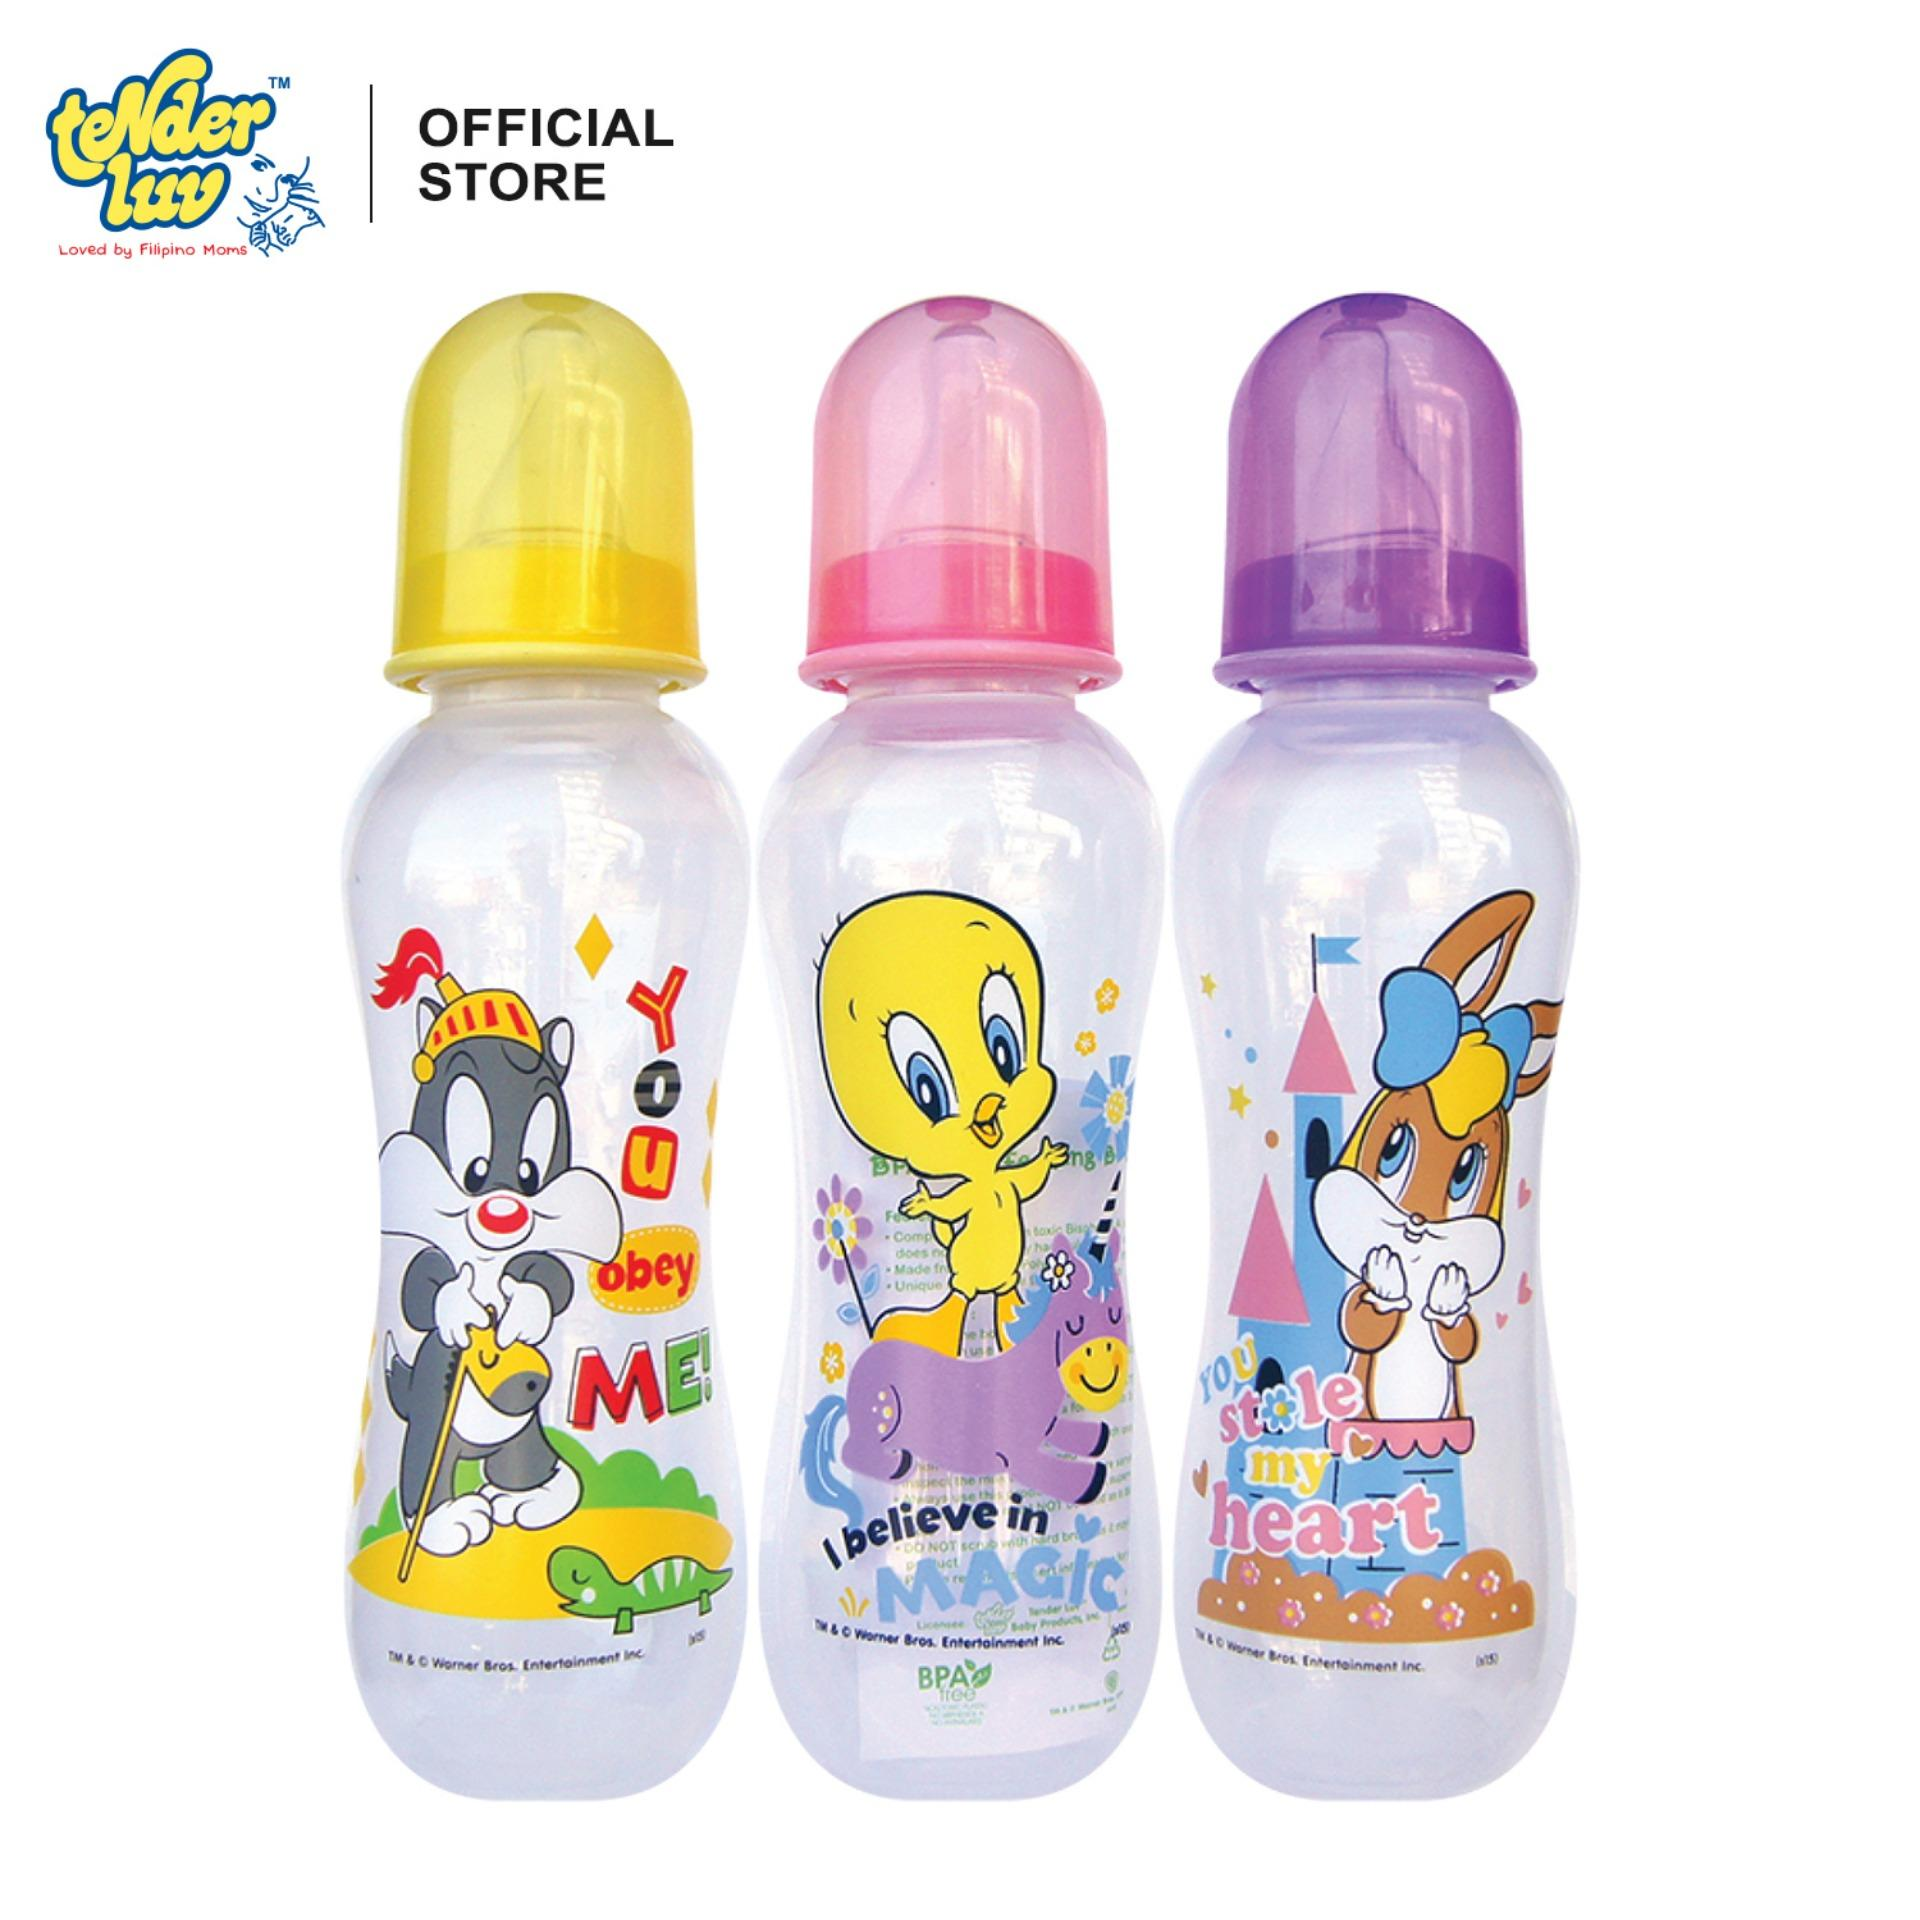 Baby Looney Tunes 12oz Standard Feeding Bottles (set Of 3) By Tender Luv.